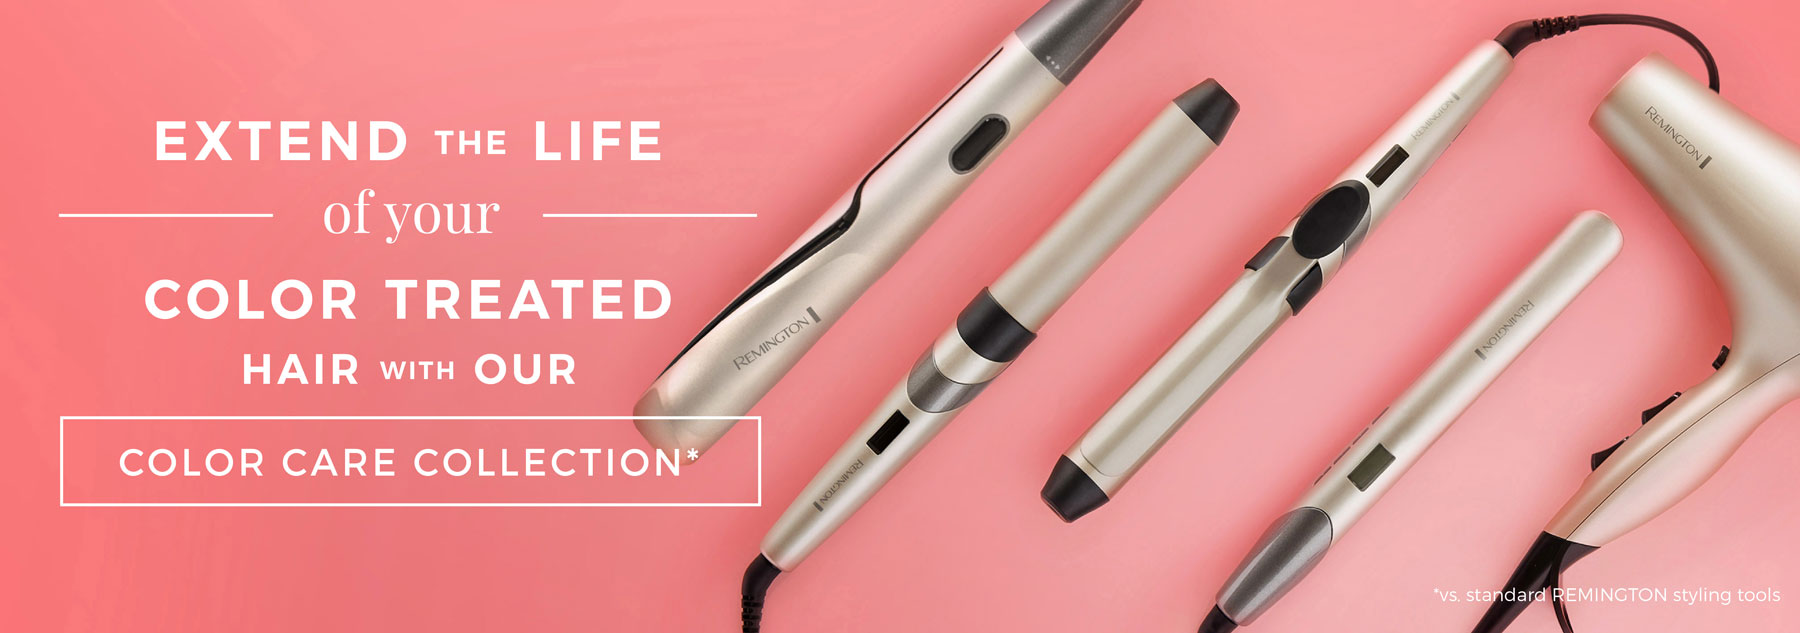 Extend the life of your color treated hair with our Color Care Collection* - *vs. standard REMINGTON styling tools